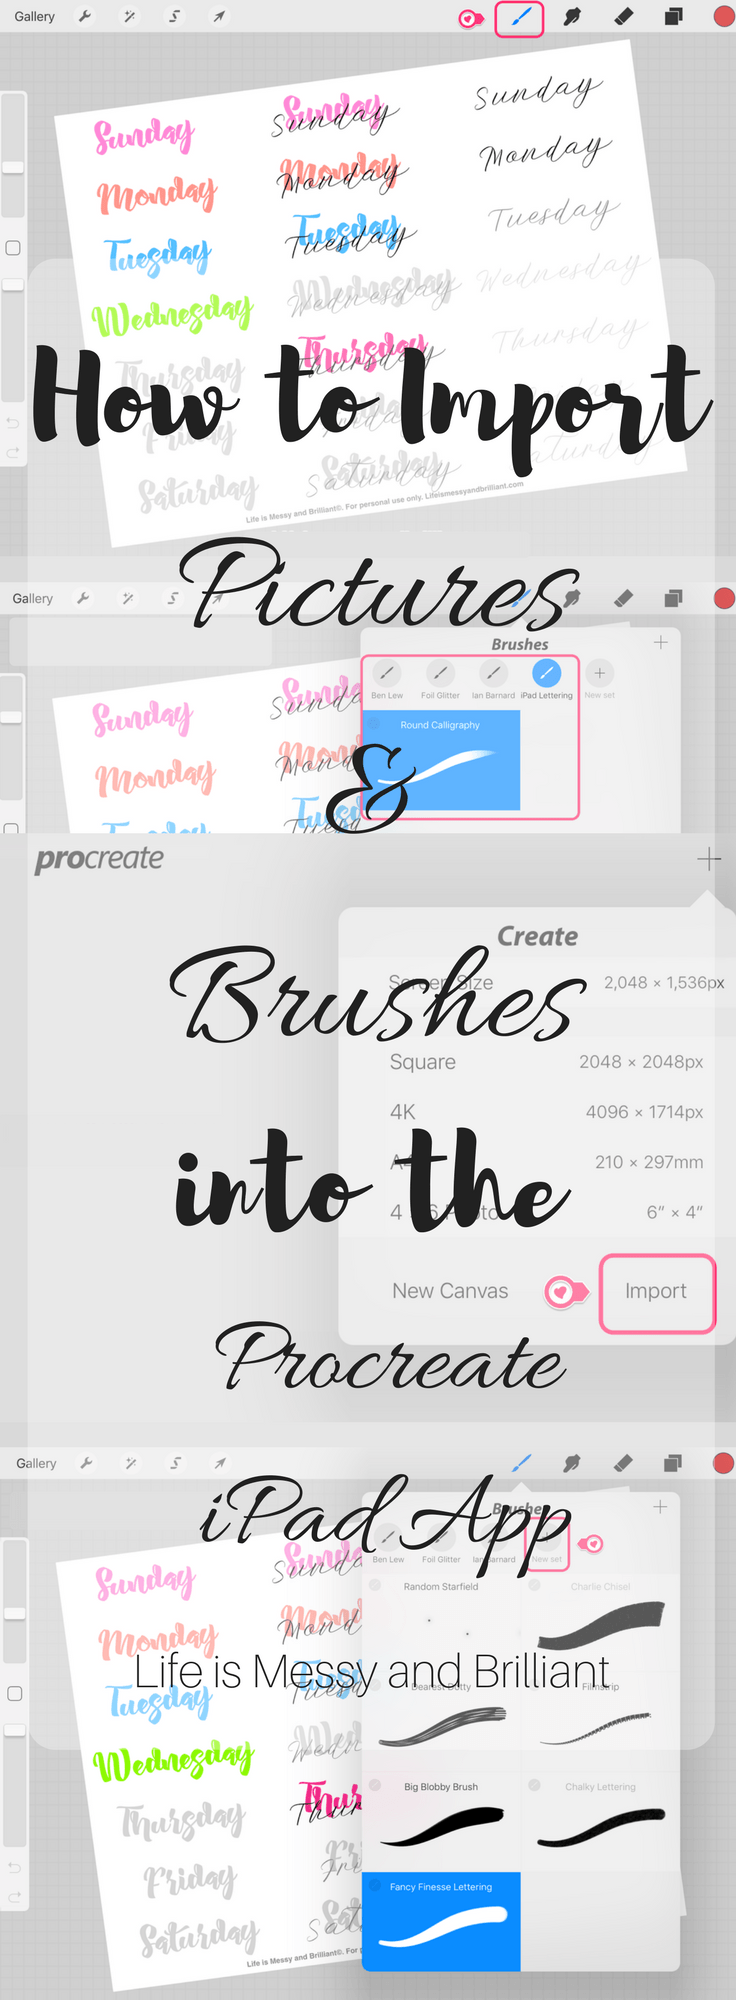 how to make procreate brushes